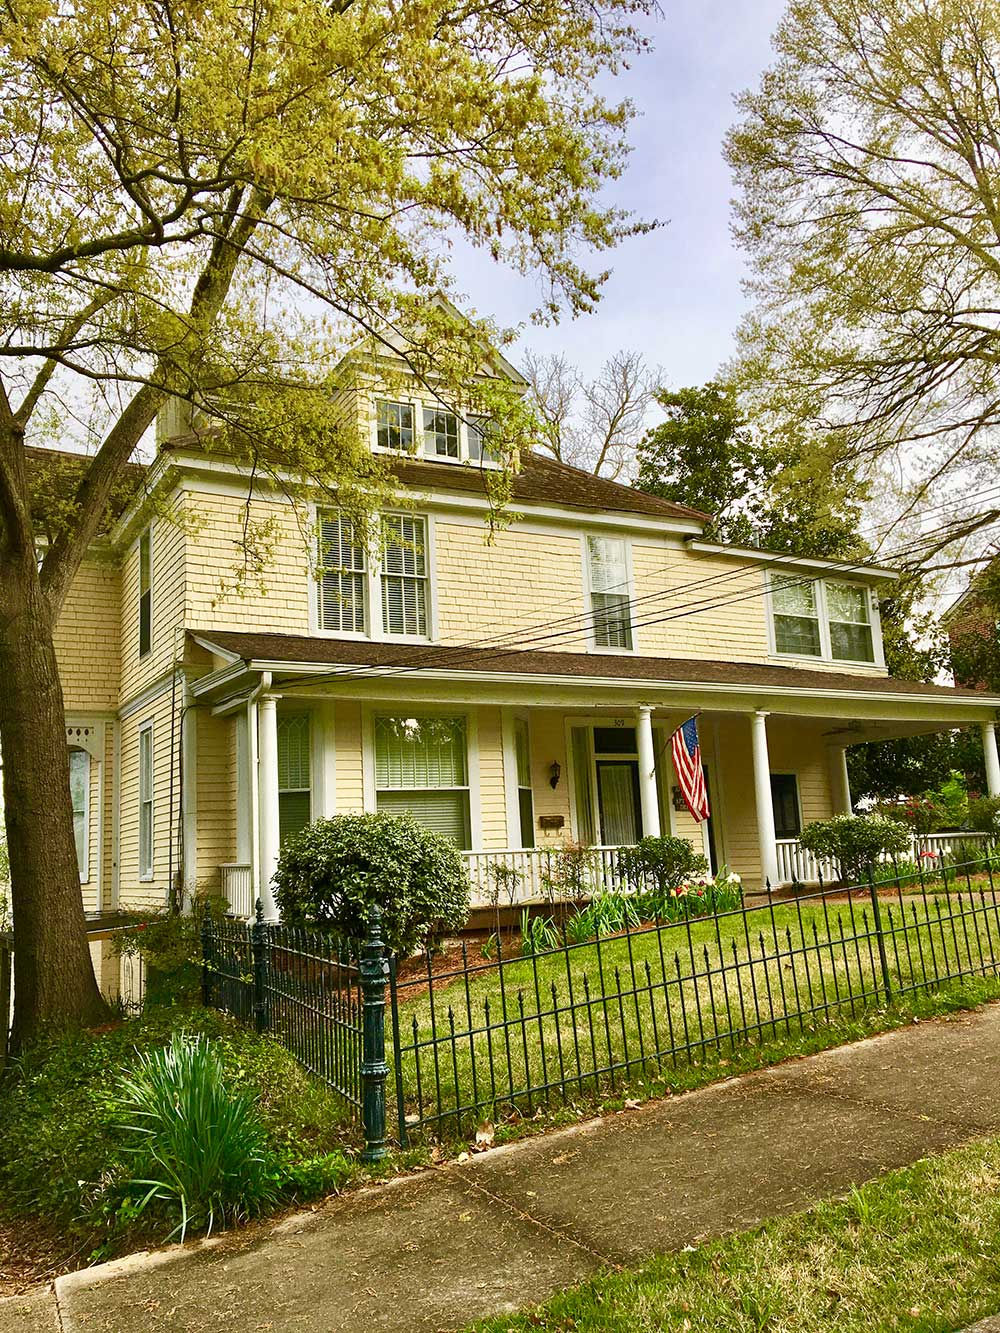 309-2 E 3rd Street, Rome, Georgia 30161, 1 Bedroom Bedrooms, ,1 BathroomBathrooms,House,Rental,E 3rd Street,1074